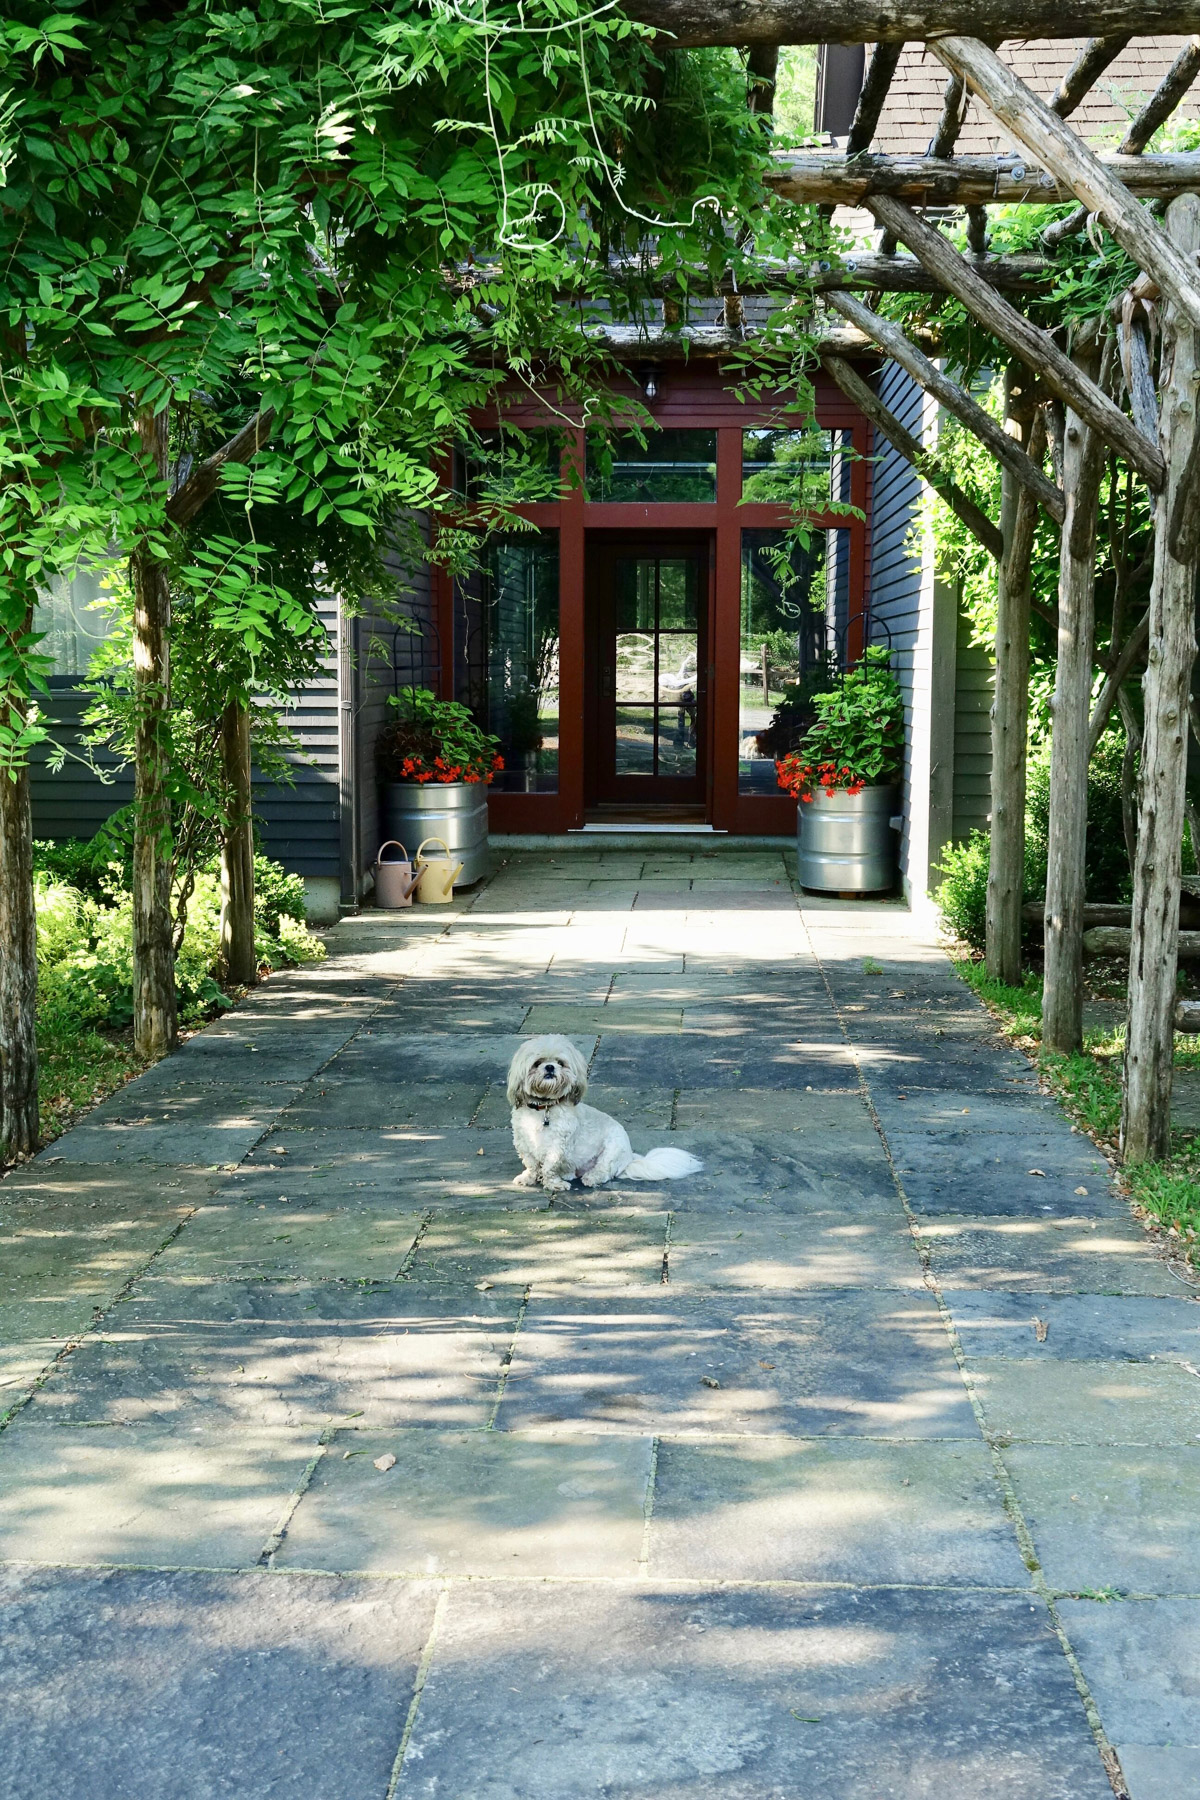 Entrry way trellis with Beo the dog